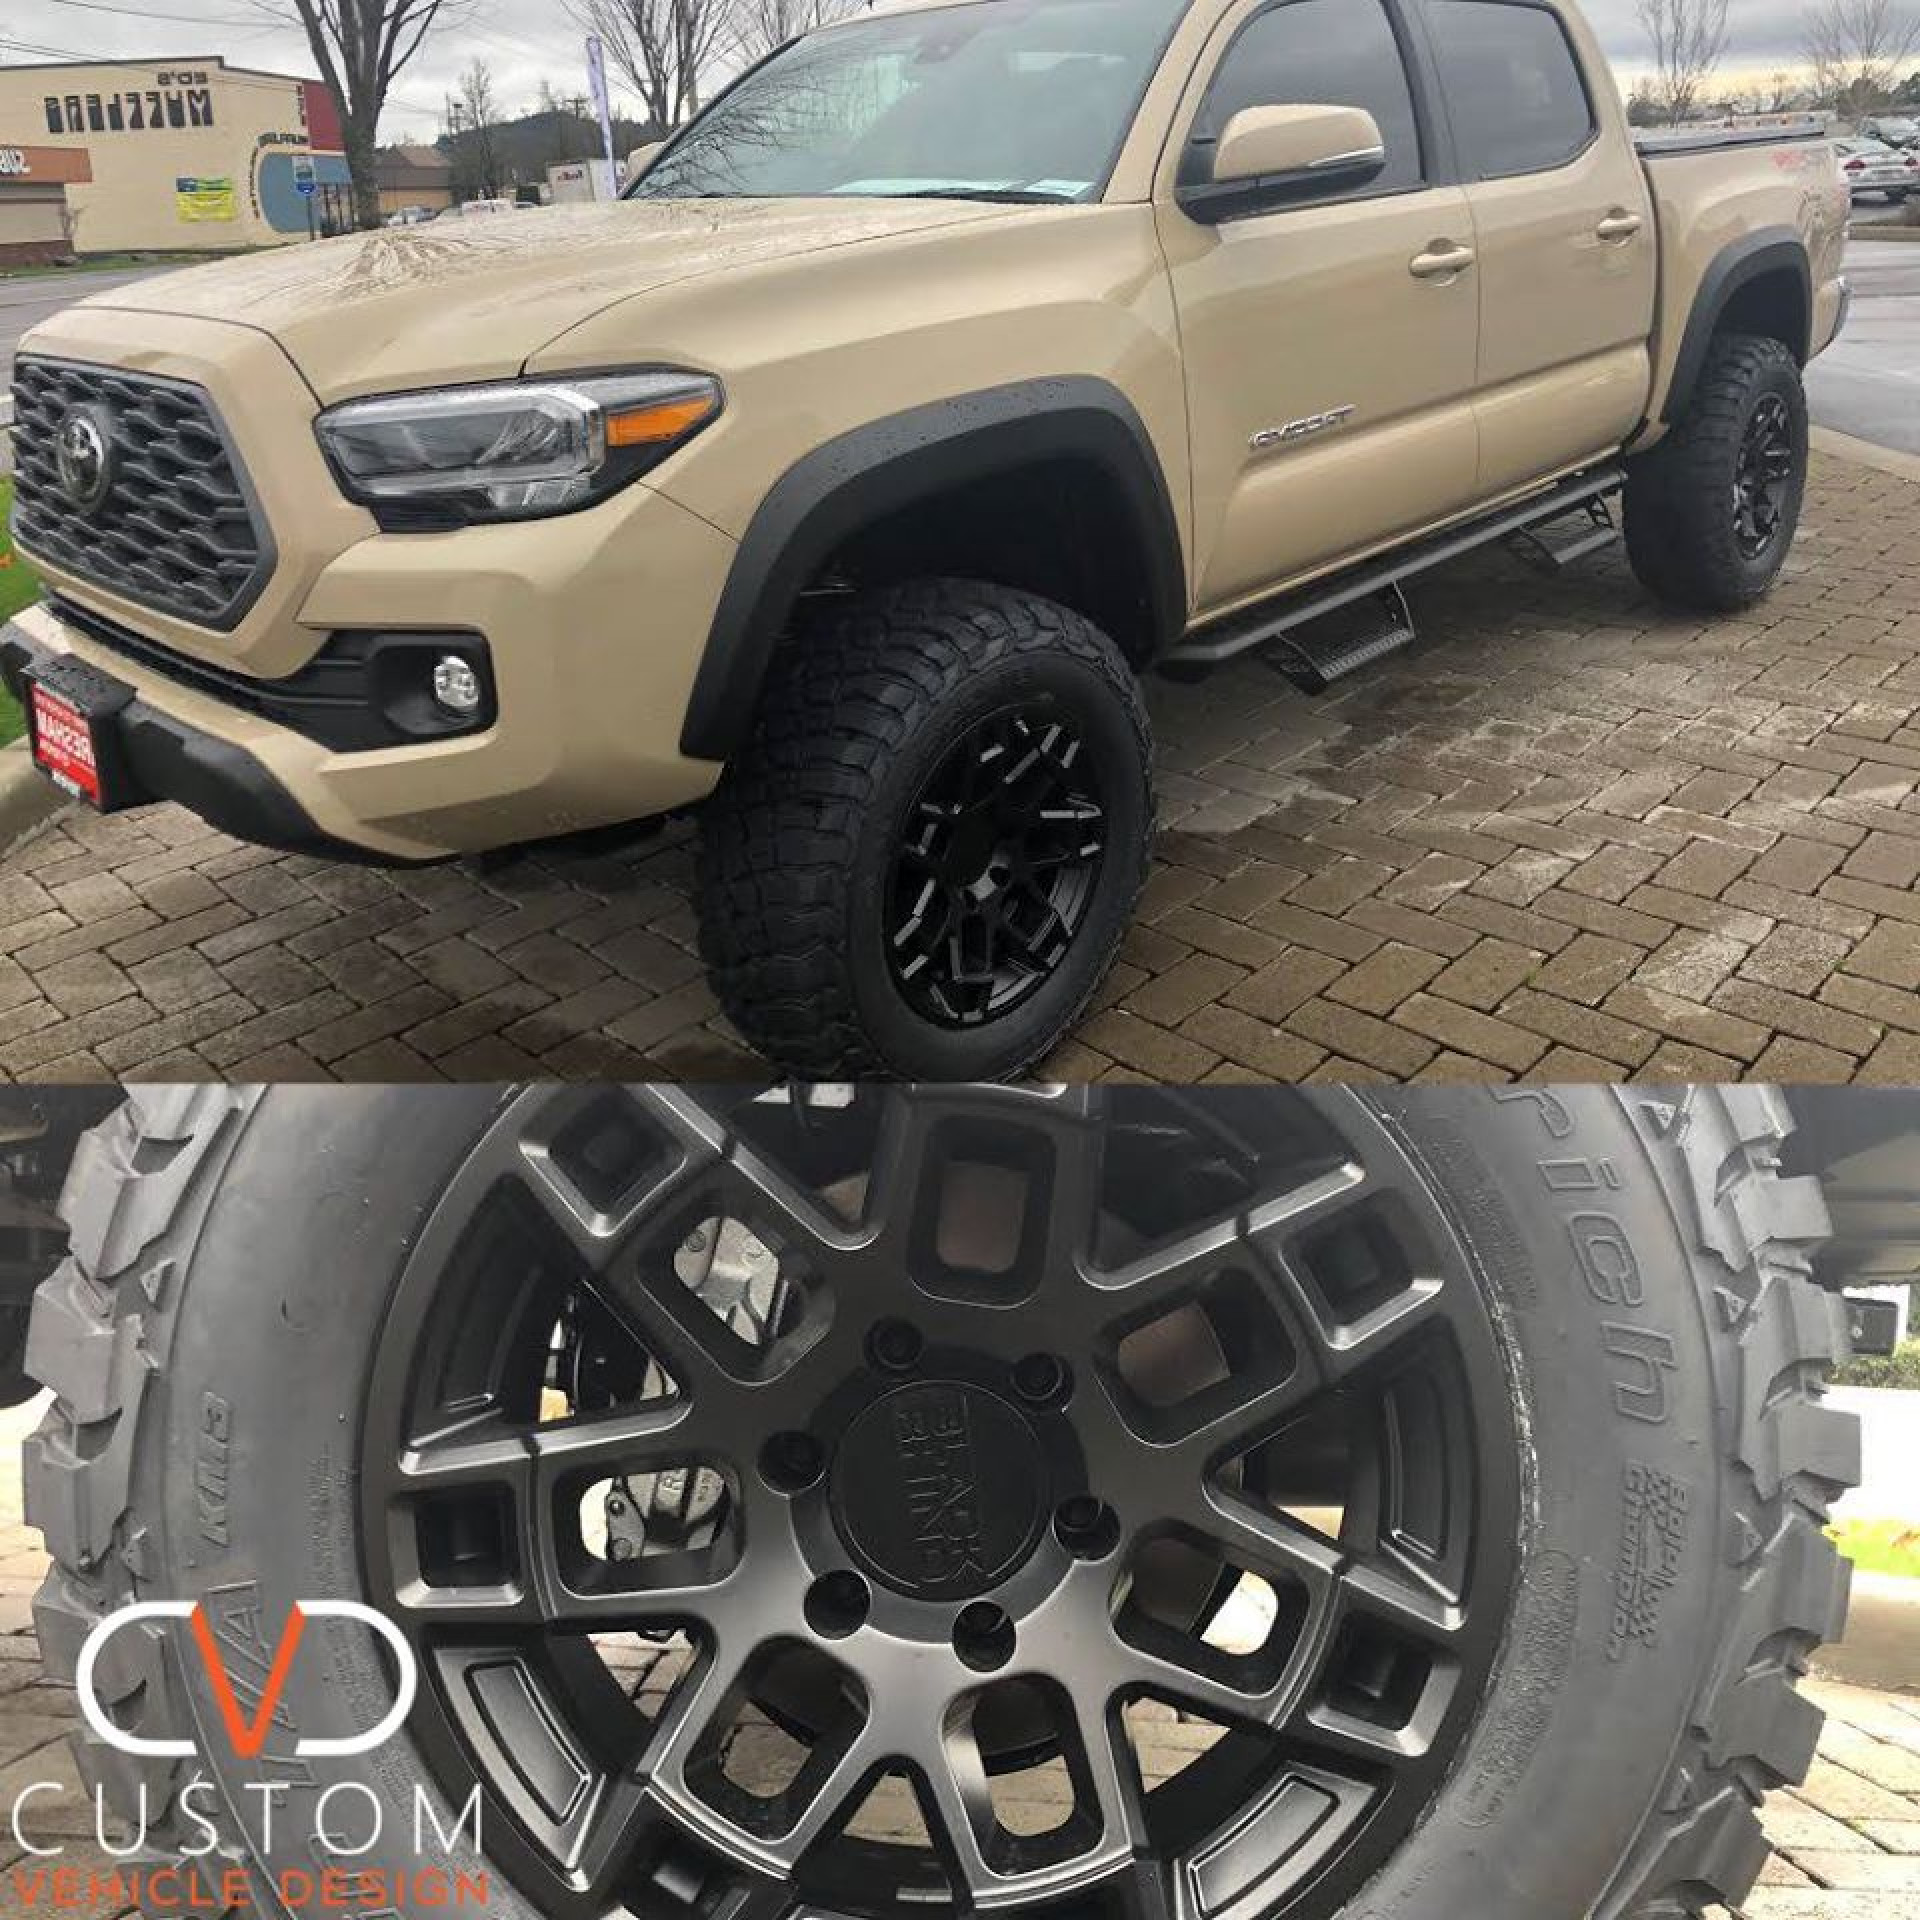 Toyota Tacoma with Black Rhino Ridge wheels